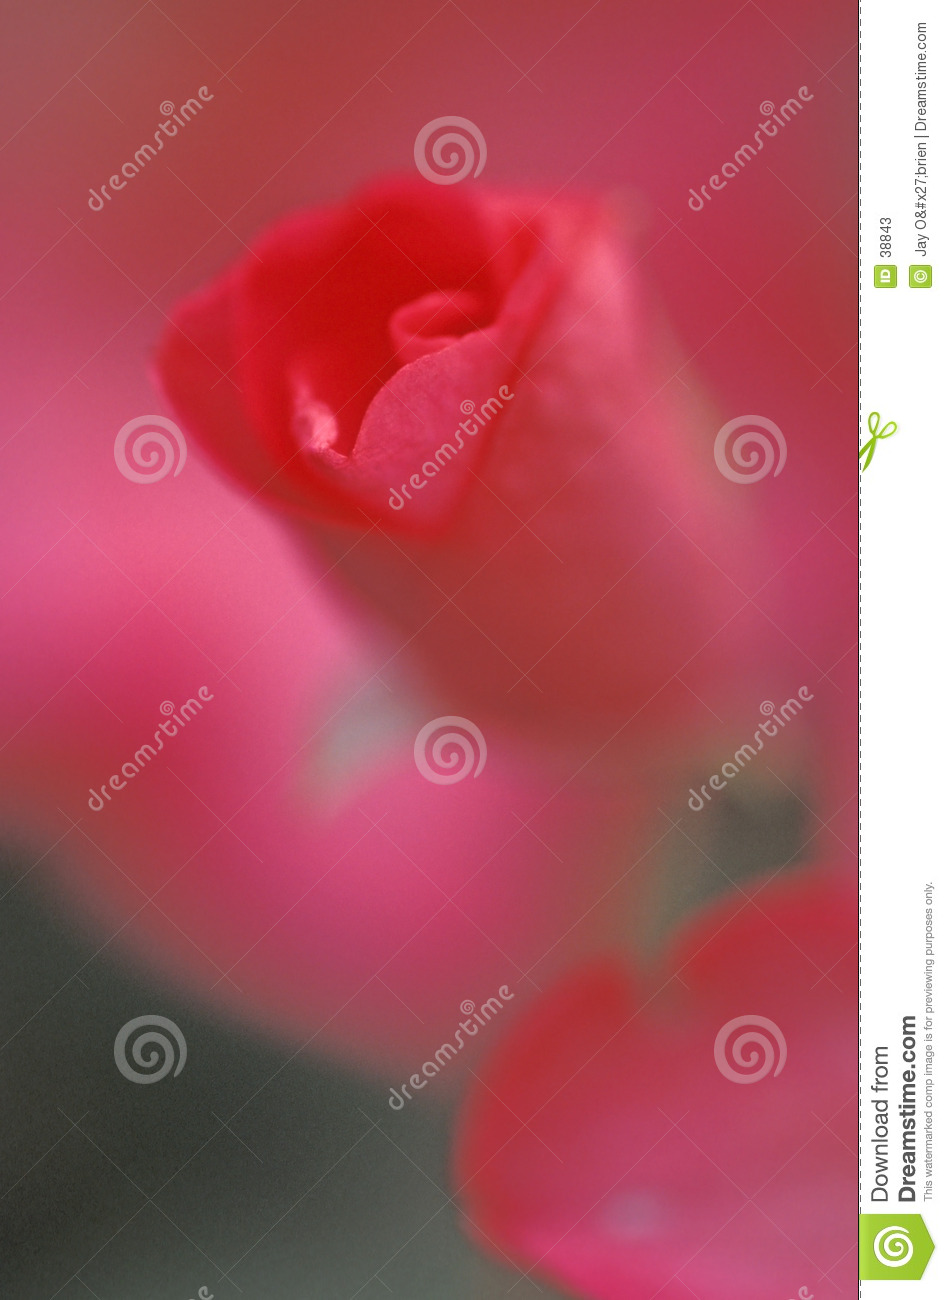 Abstract rose bud